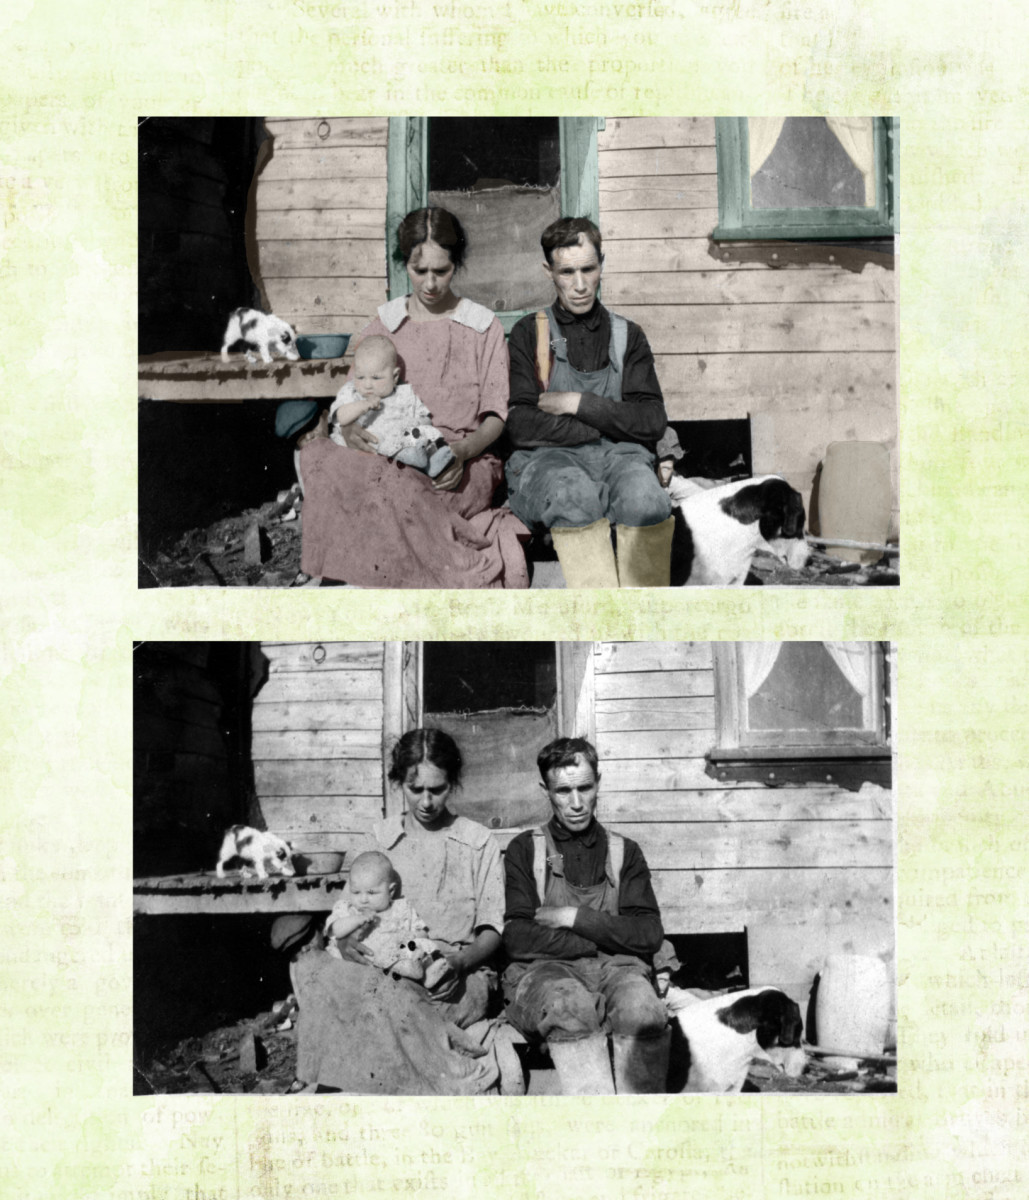 How to Colorize an Old Black and White Photo with GIMP: A GIMP Tutorial